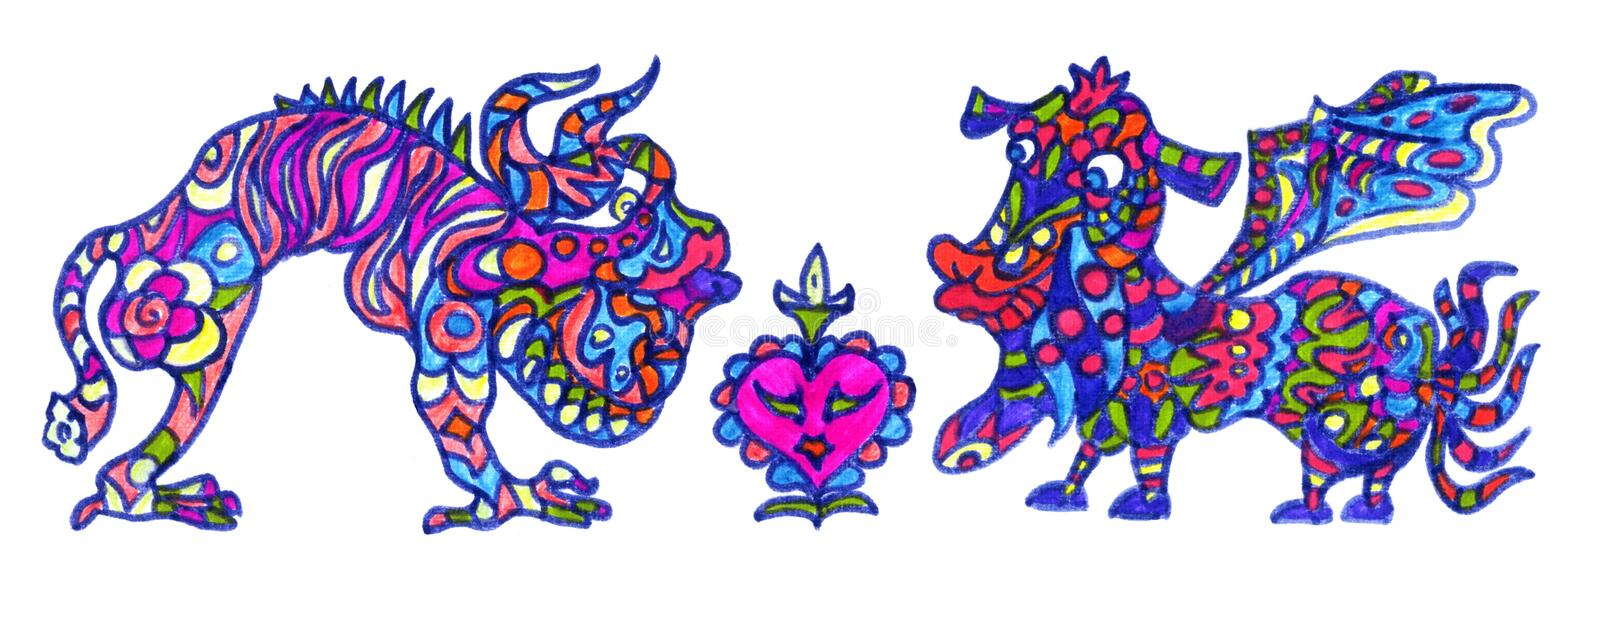 Ethnic ornament mythical monsters couple inspired by fusion of Ukrainian, Indian and Mexican traditional motifs. Felt-tip pens doodle drawing isolated on white stock illustration